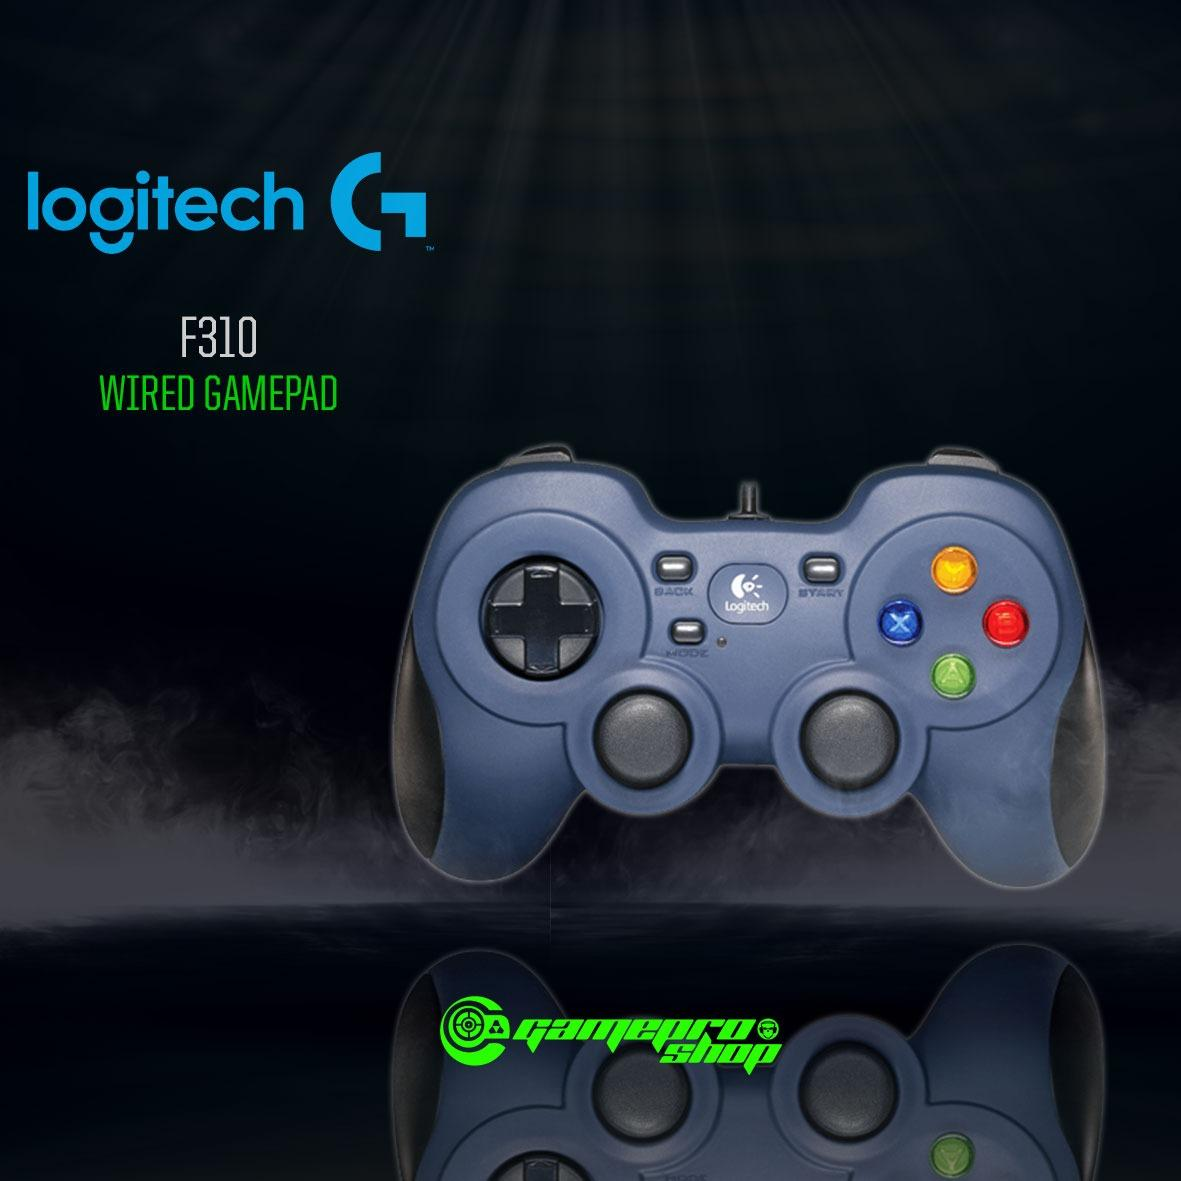 Logitech F310 Wired Gamepad *COMEX PROMO*